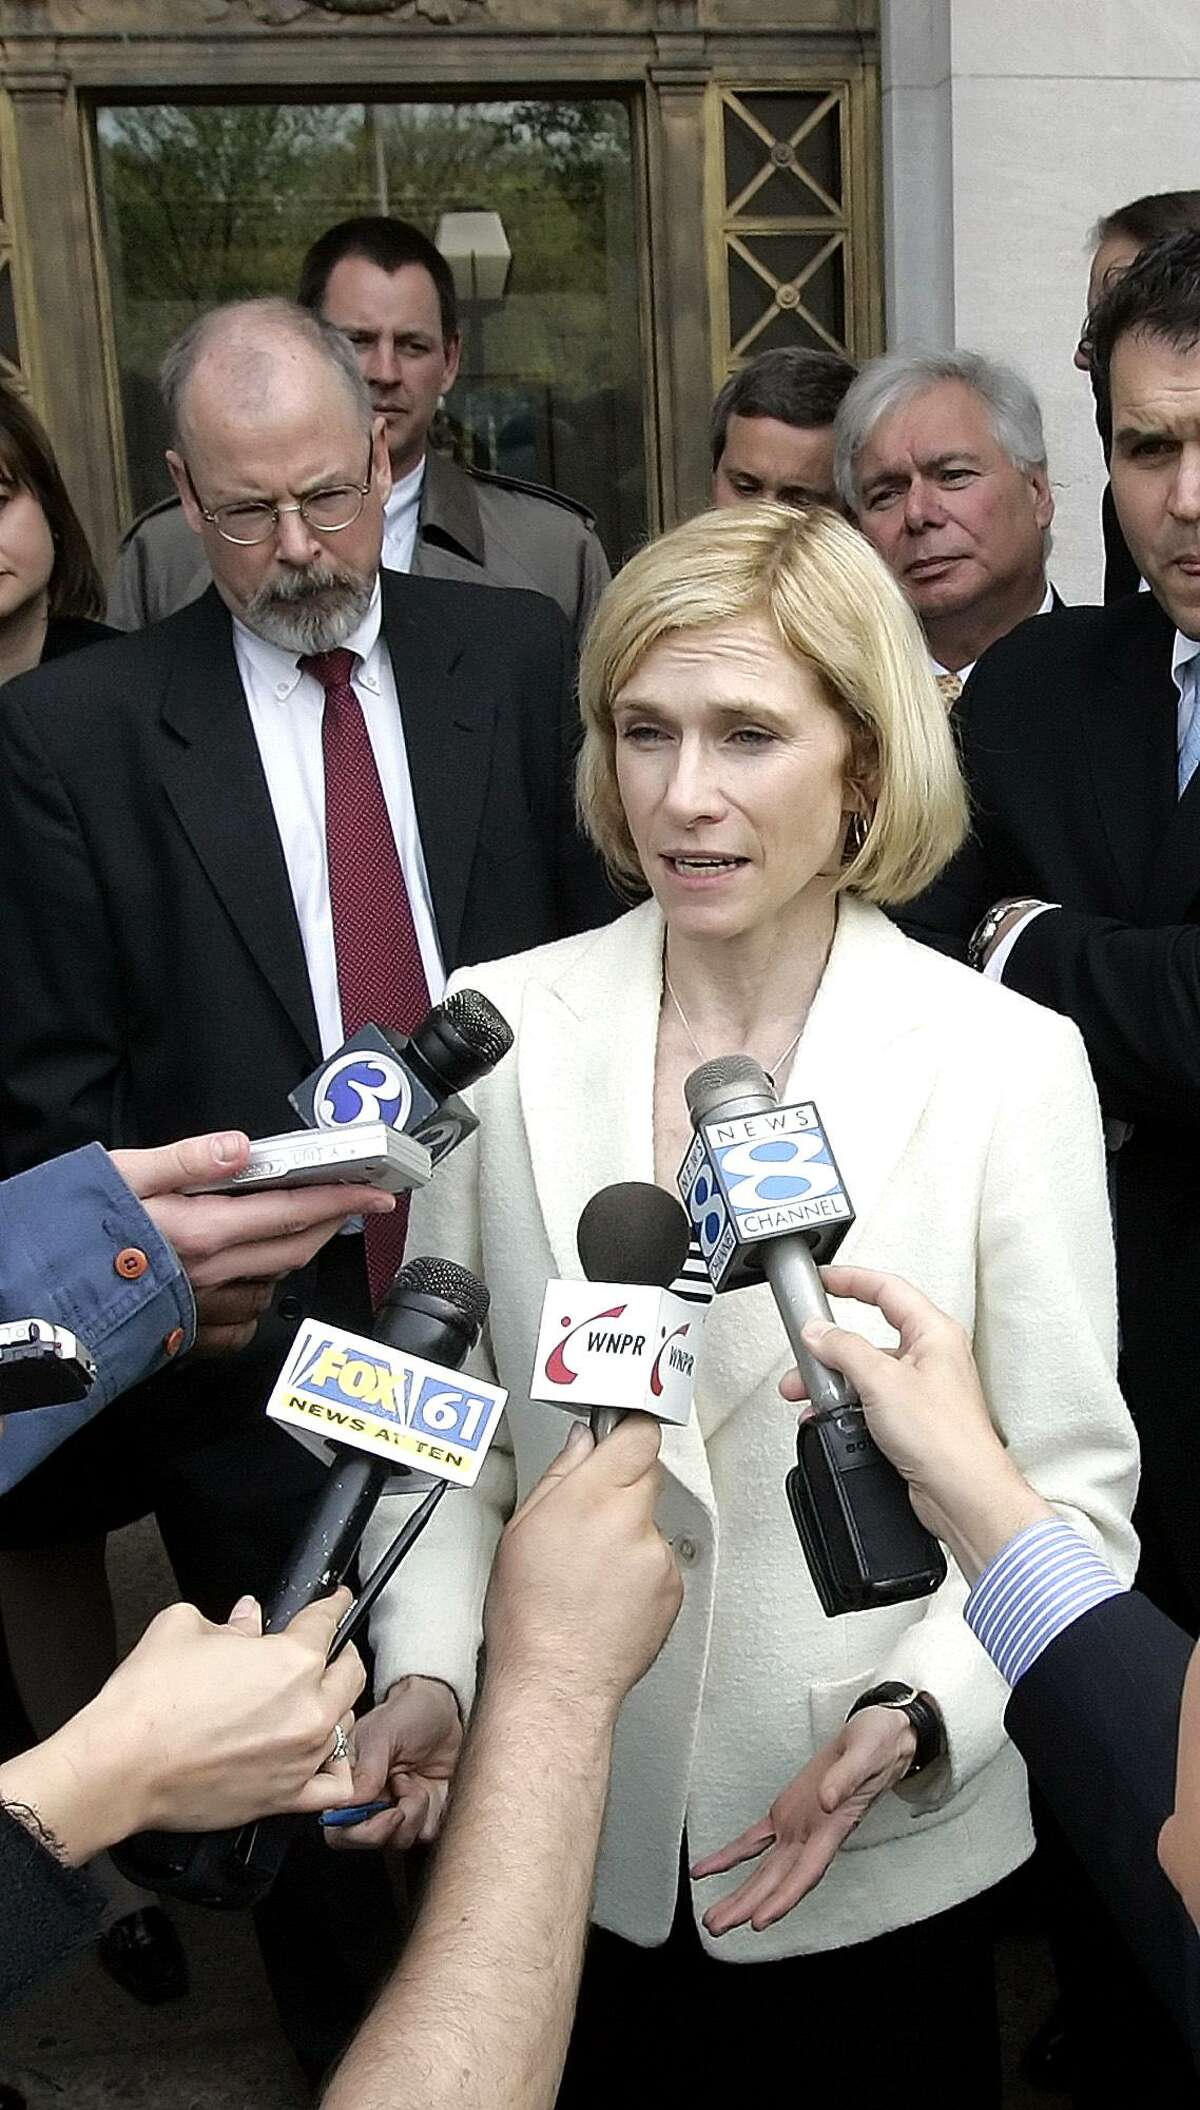 Assistant U.S. Attorney Nora Dannehy, named Connecticut deputy attorney general Friday, shown in this file photo with reporters after state contractor William Tomasso and former Connecticut Gov. John G. Rowland's Co-Chief of Staff Peter Ellef were sentenced to federal prison on corruption charges in 2006, in New Haven. (AP Photo/Bob Child)